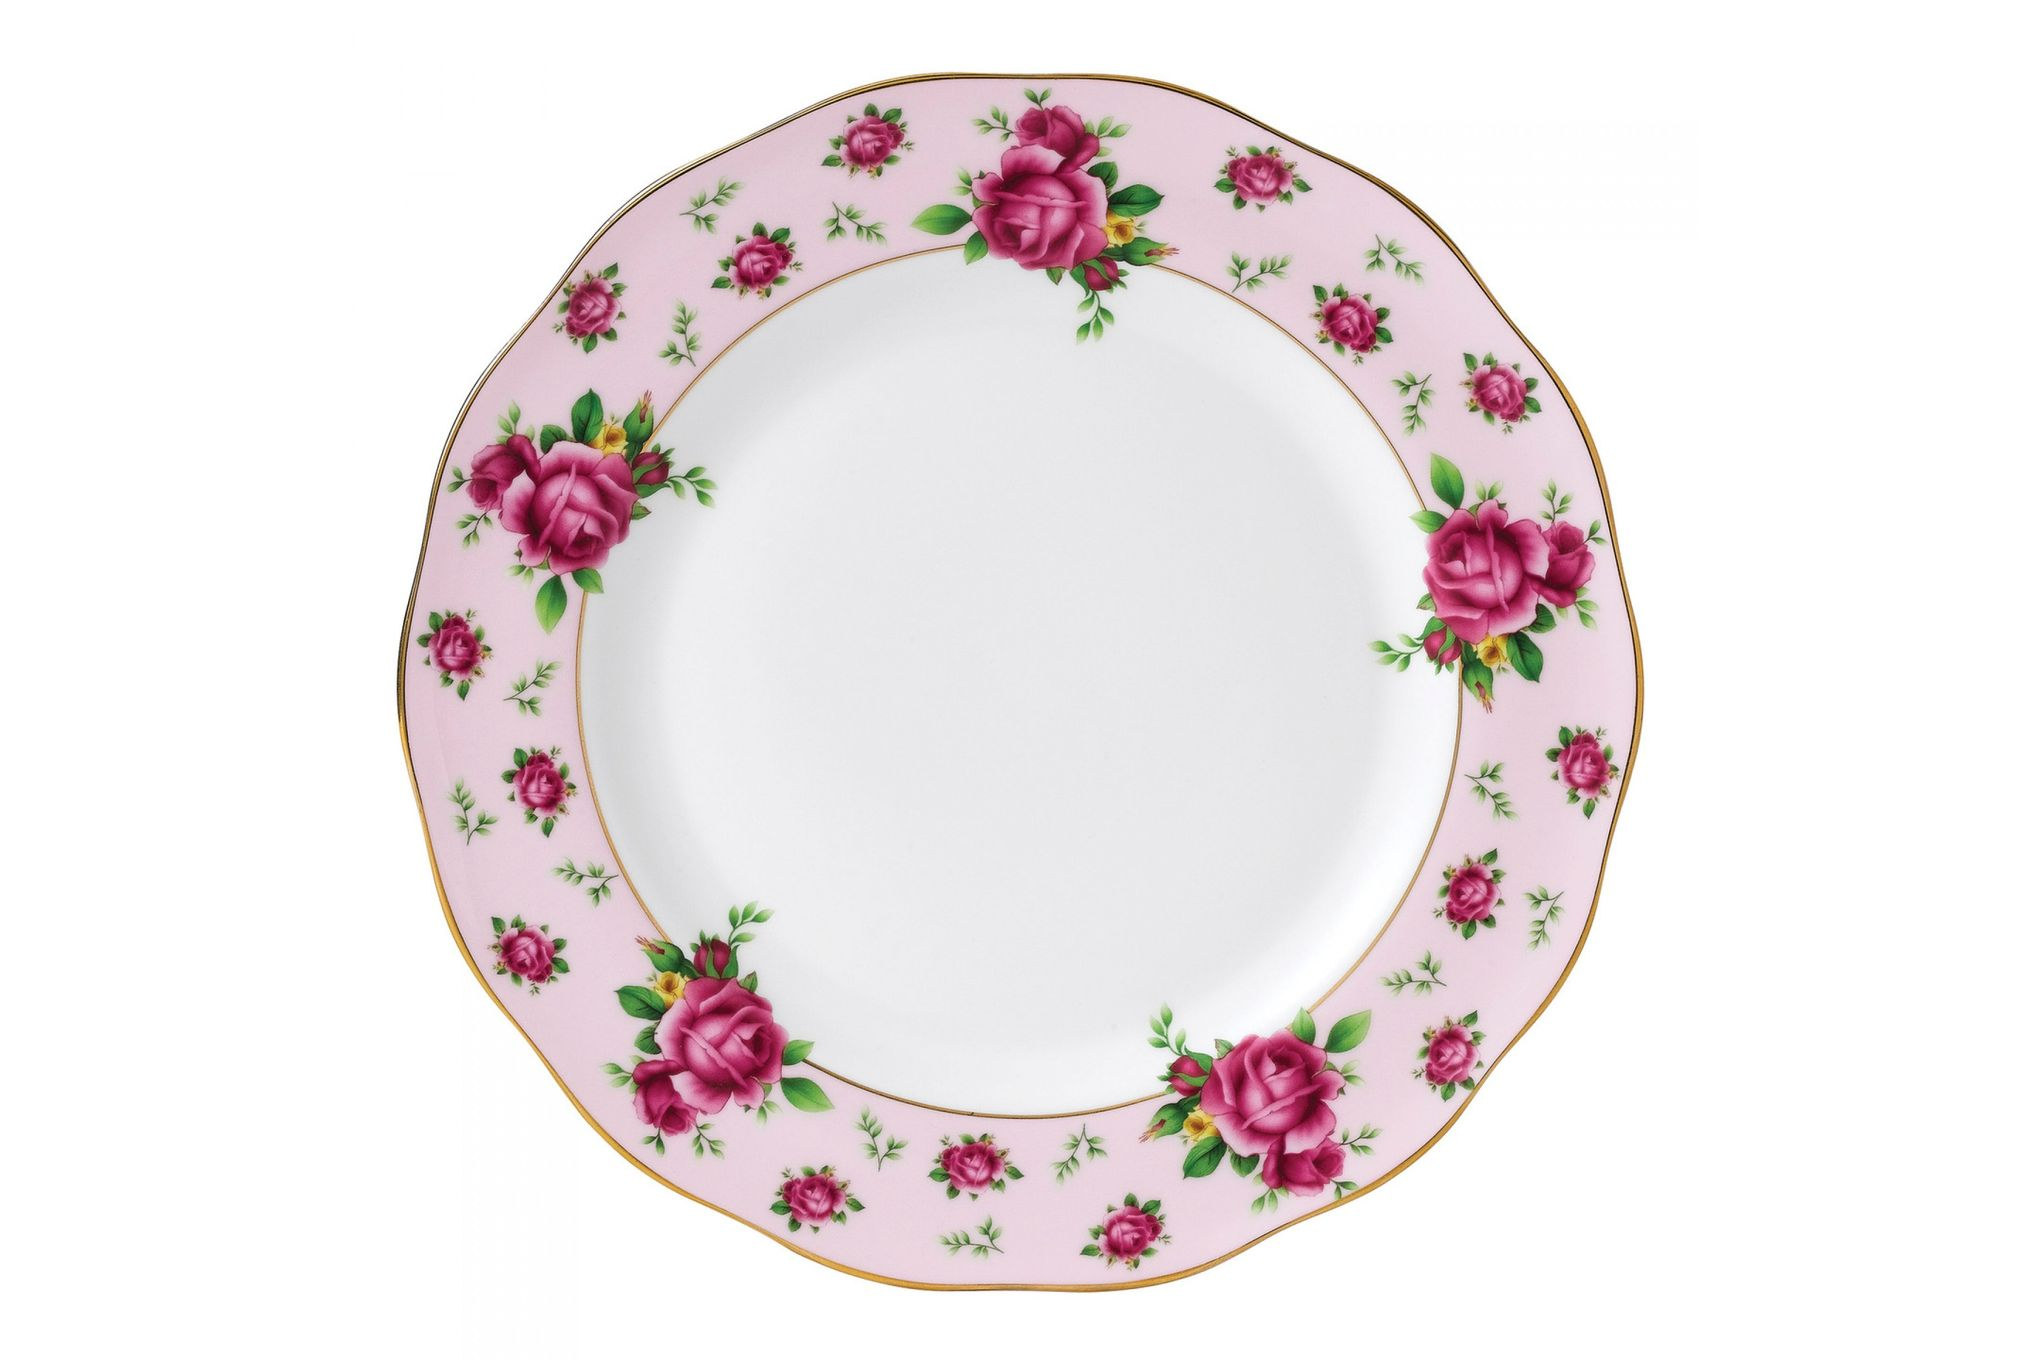 Royal Albert New Country Roses Pink Dinner Plate 27cm thumb 1